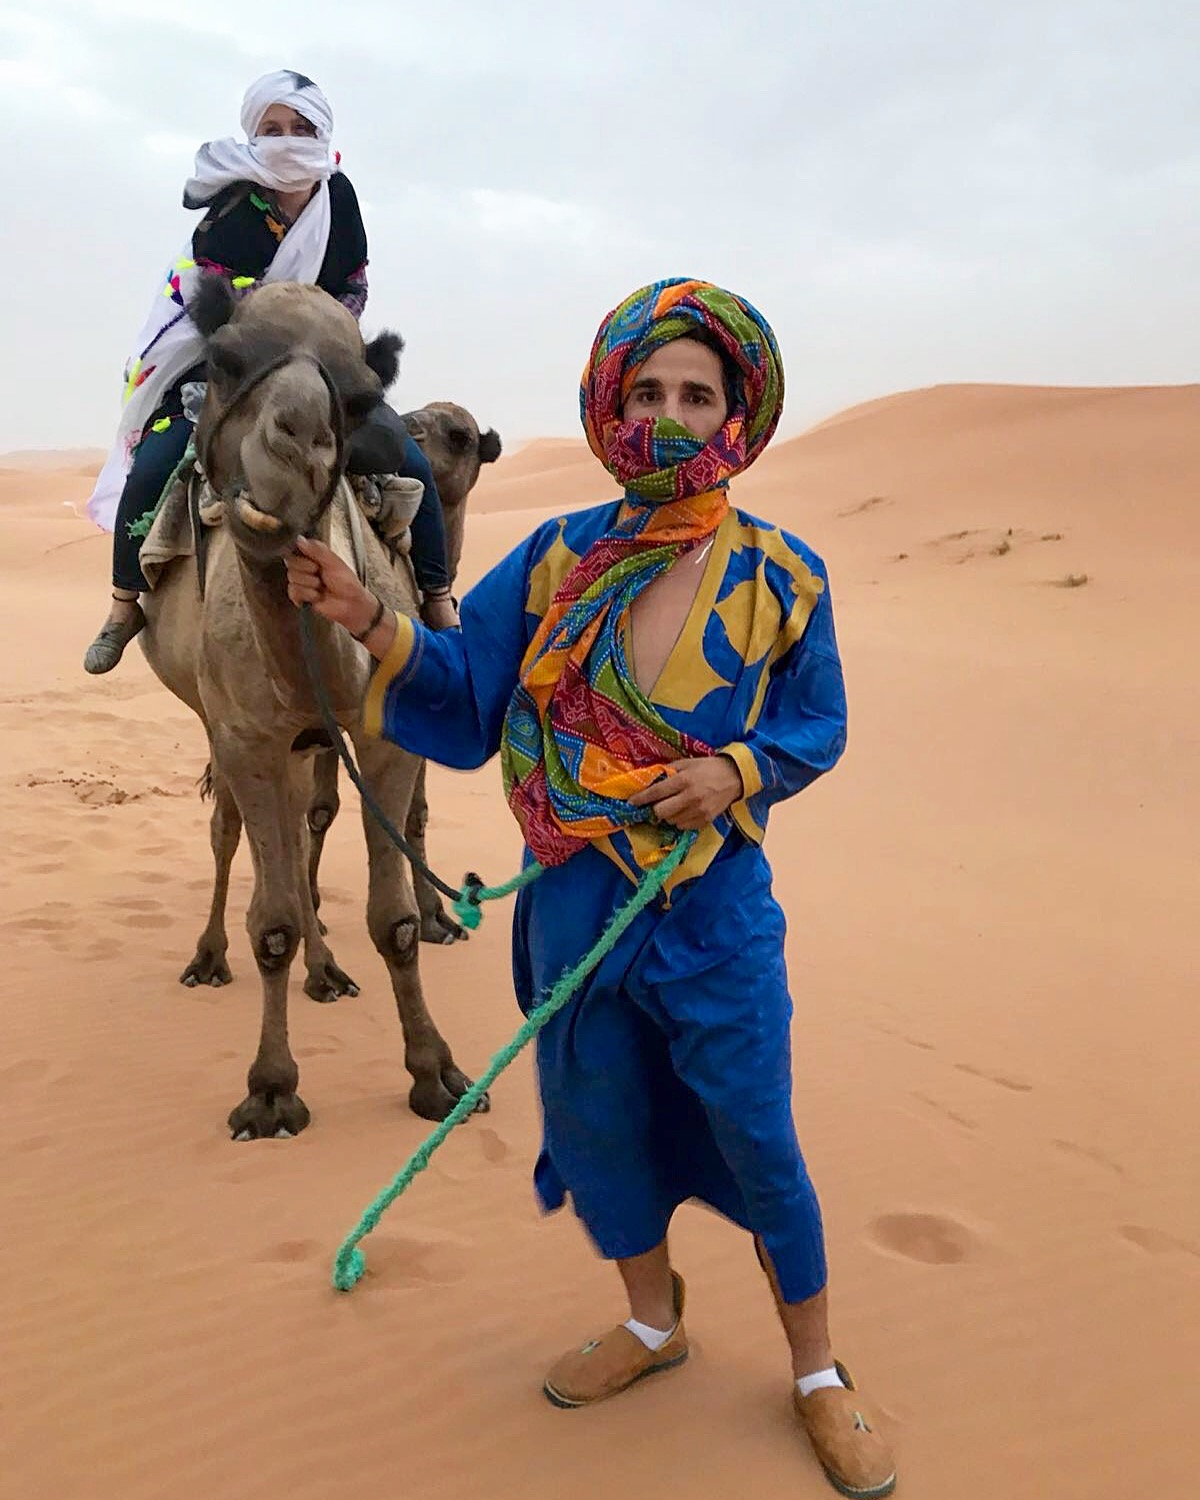 Camel Trekking Tours - Try life as a Nomad with our 3 to 5 day Camel Trekking Tours. You're guaranteed to connect with the land and gain a deeper appreciation for the Nomadic life.